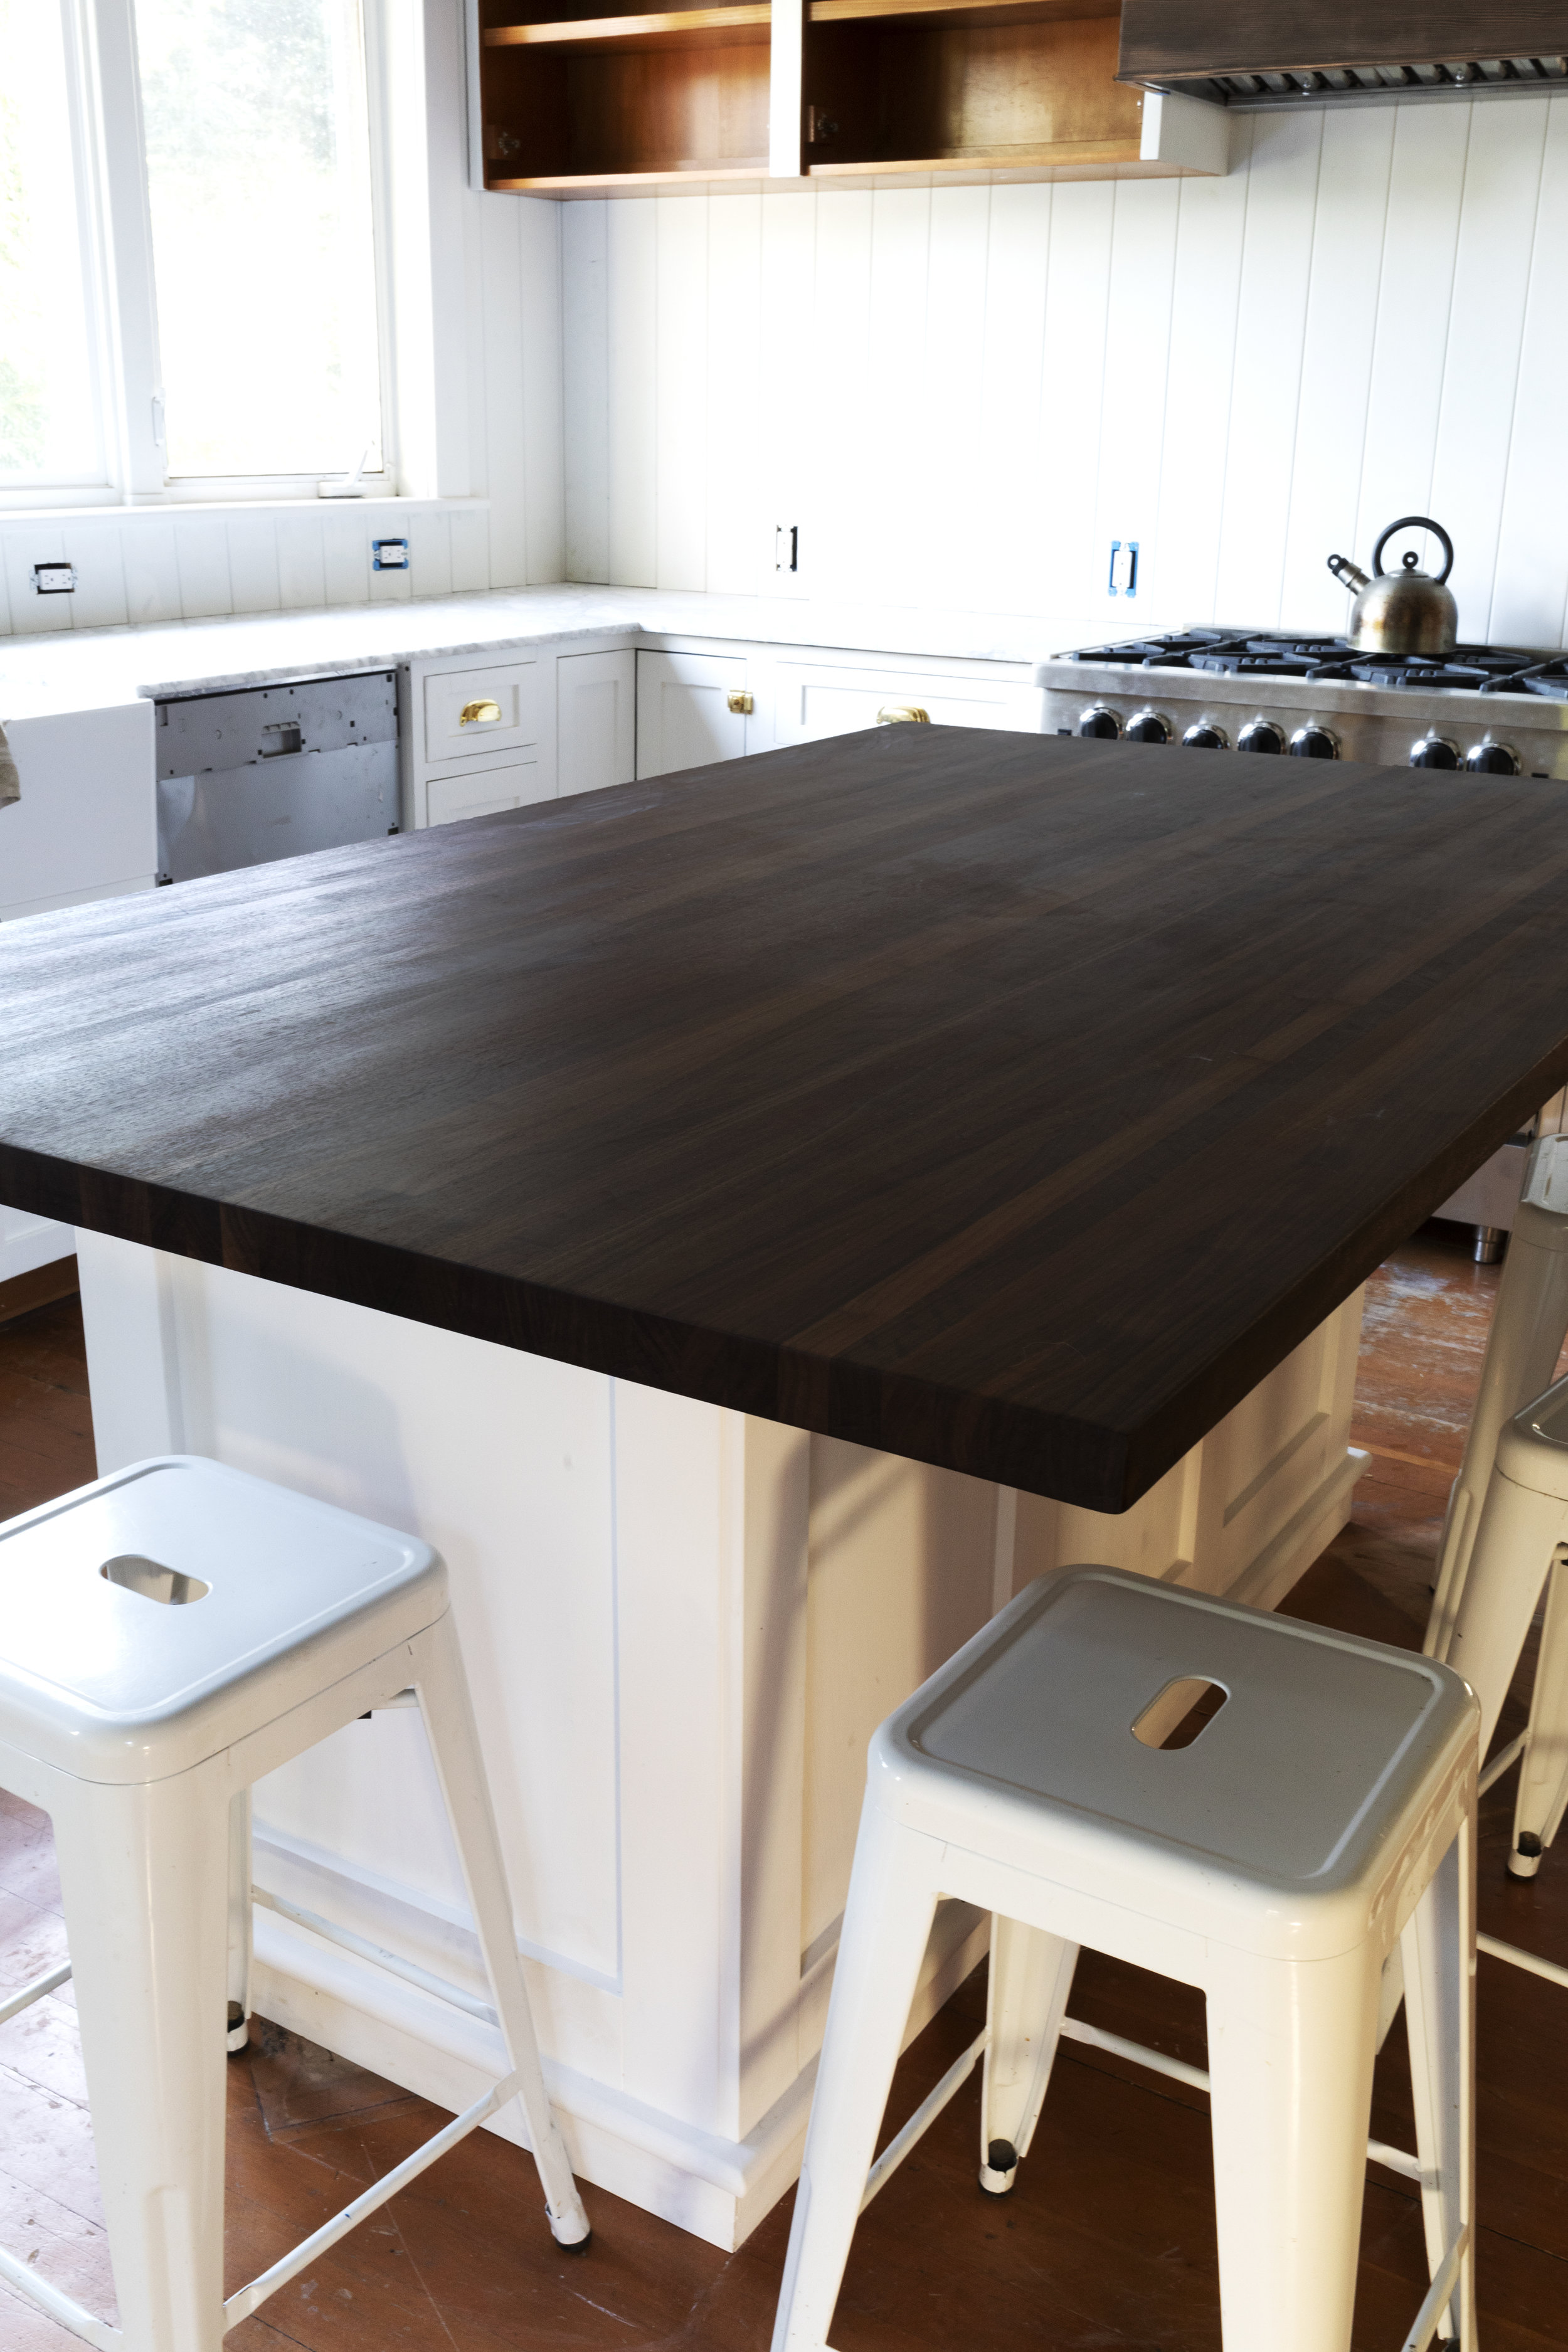 Best Finish For Butcher Block Countertop: DIY // How To Cut, Sand, Install, And Finish A Butcher